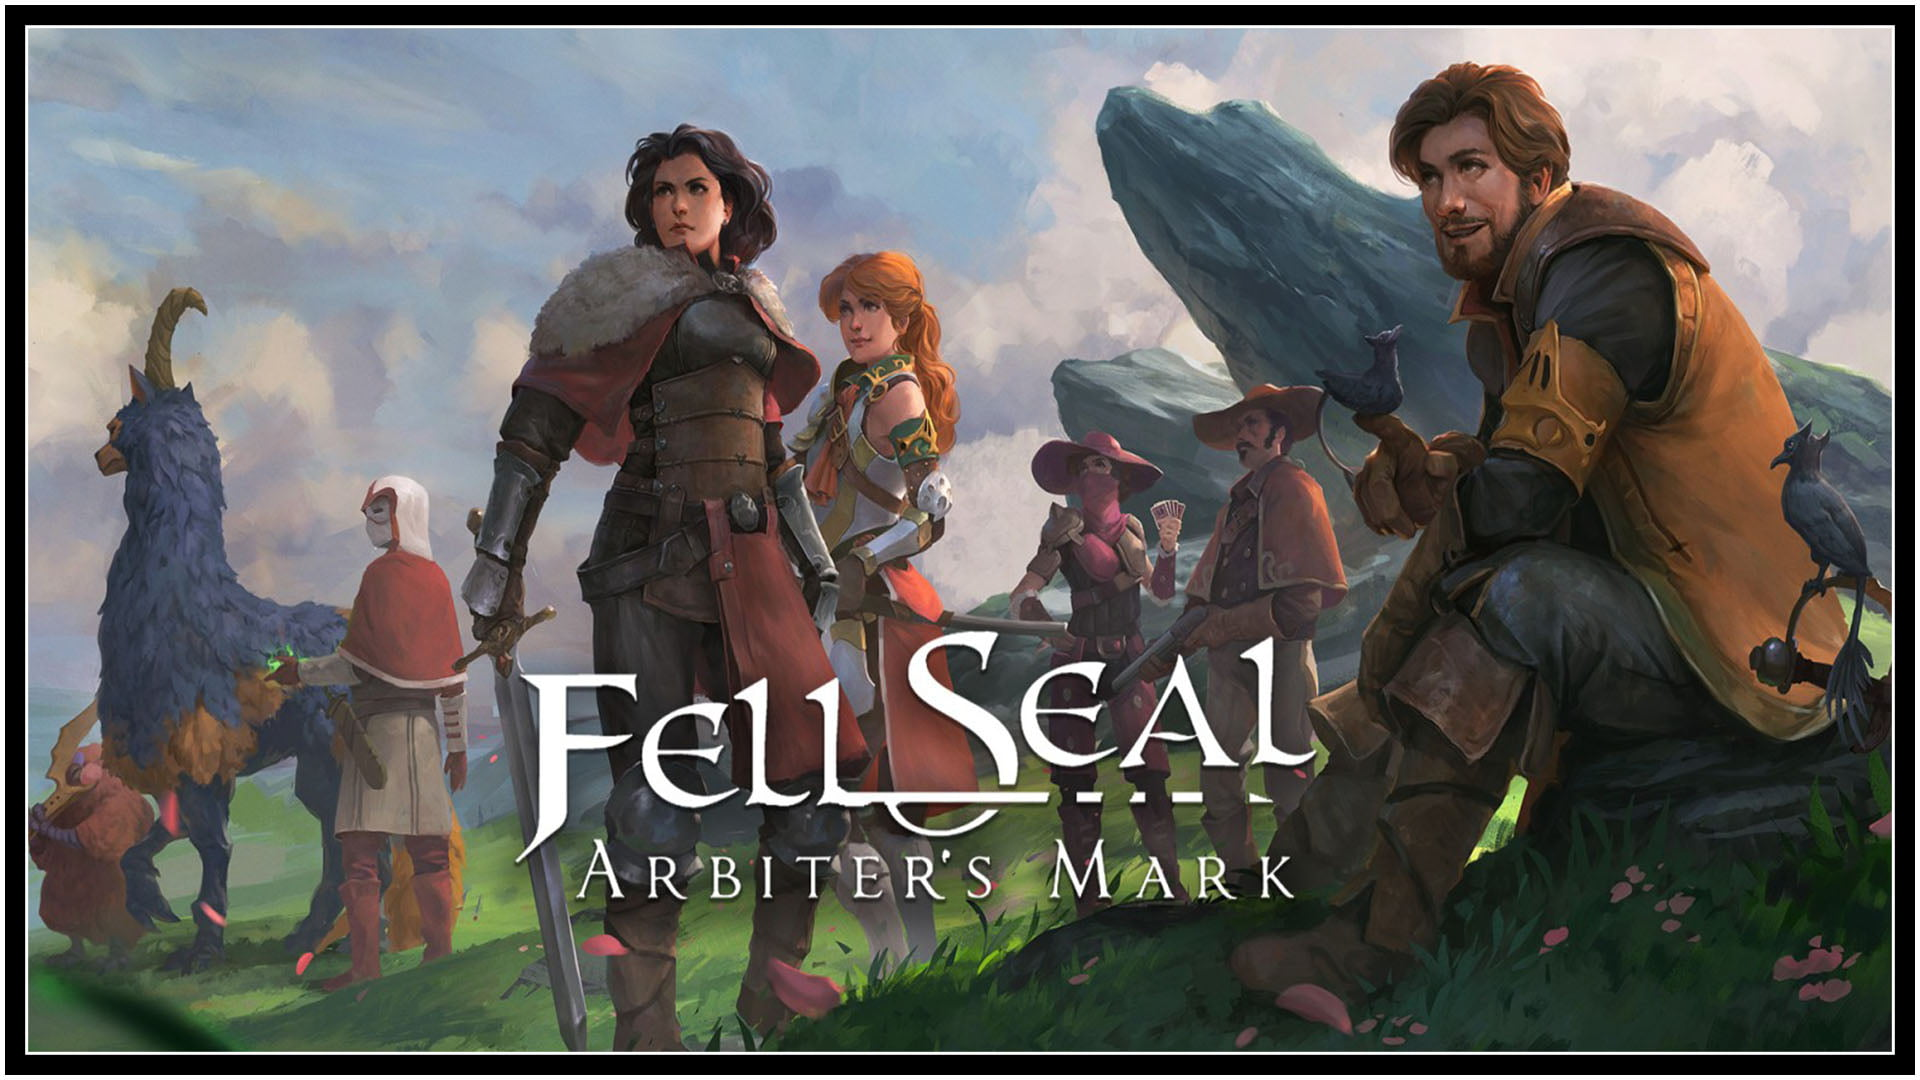 Fell Seal: Arbiter's Mark (PC) Review